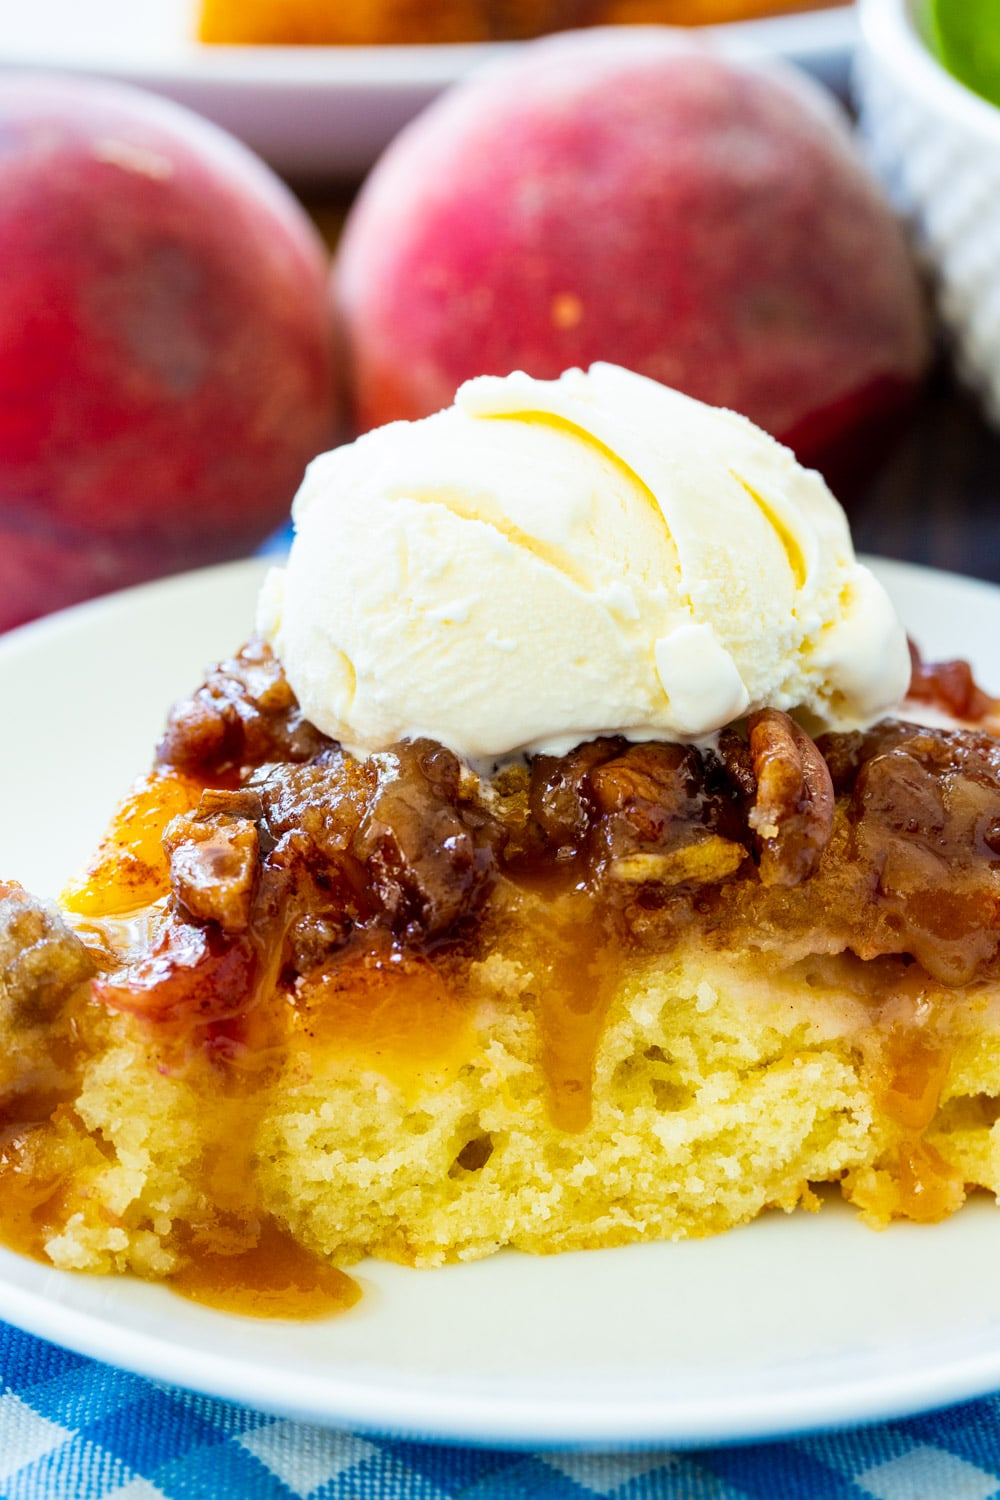 Close-up of slice of Peach Praline Upside Down Cake topped with vanilla ice cream.